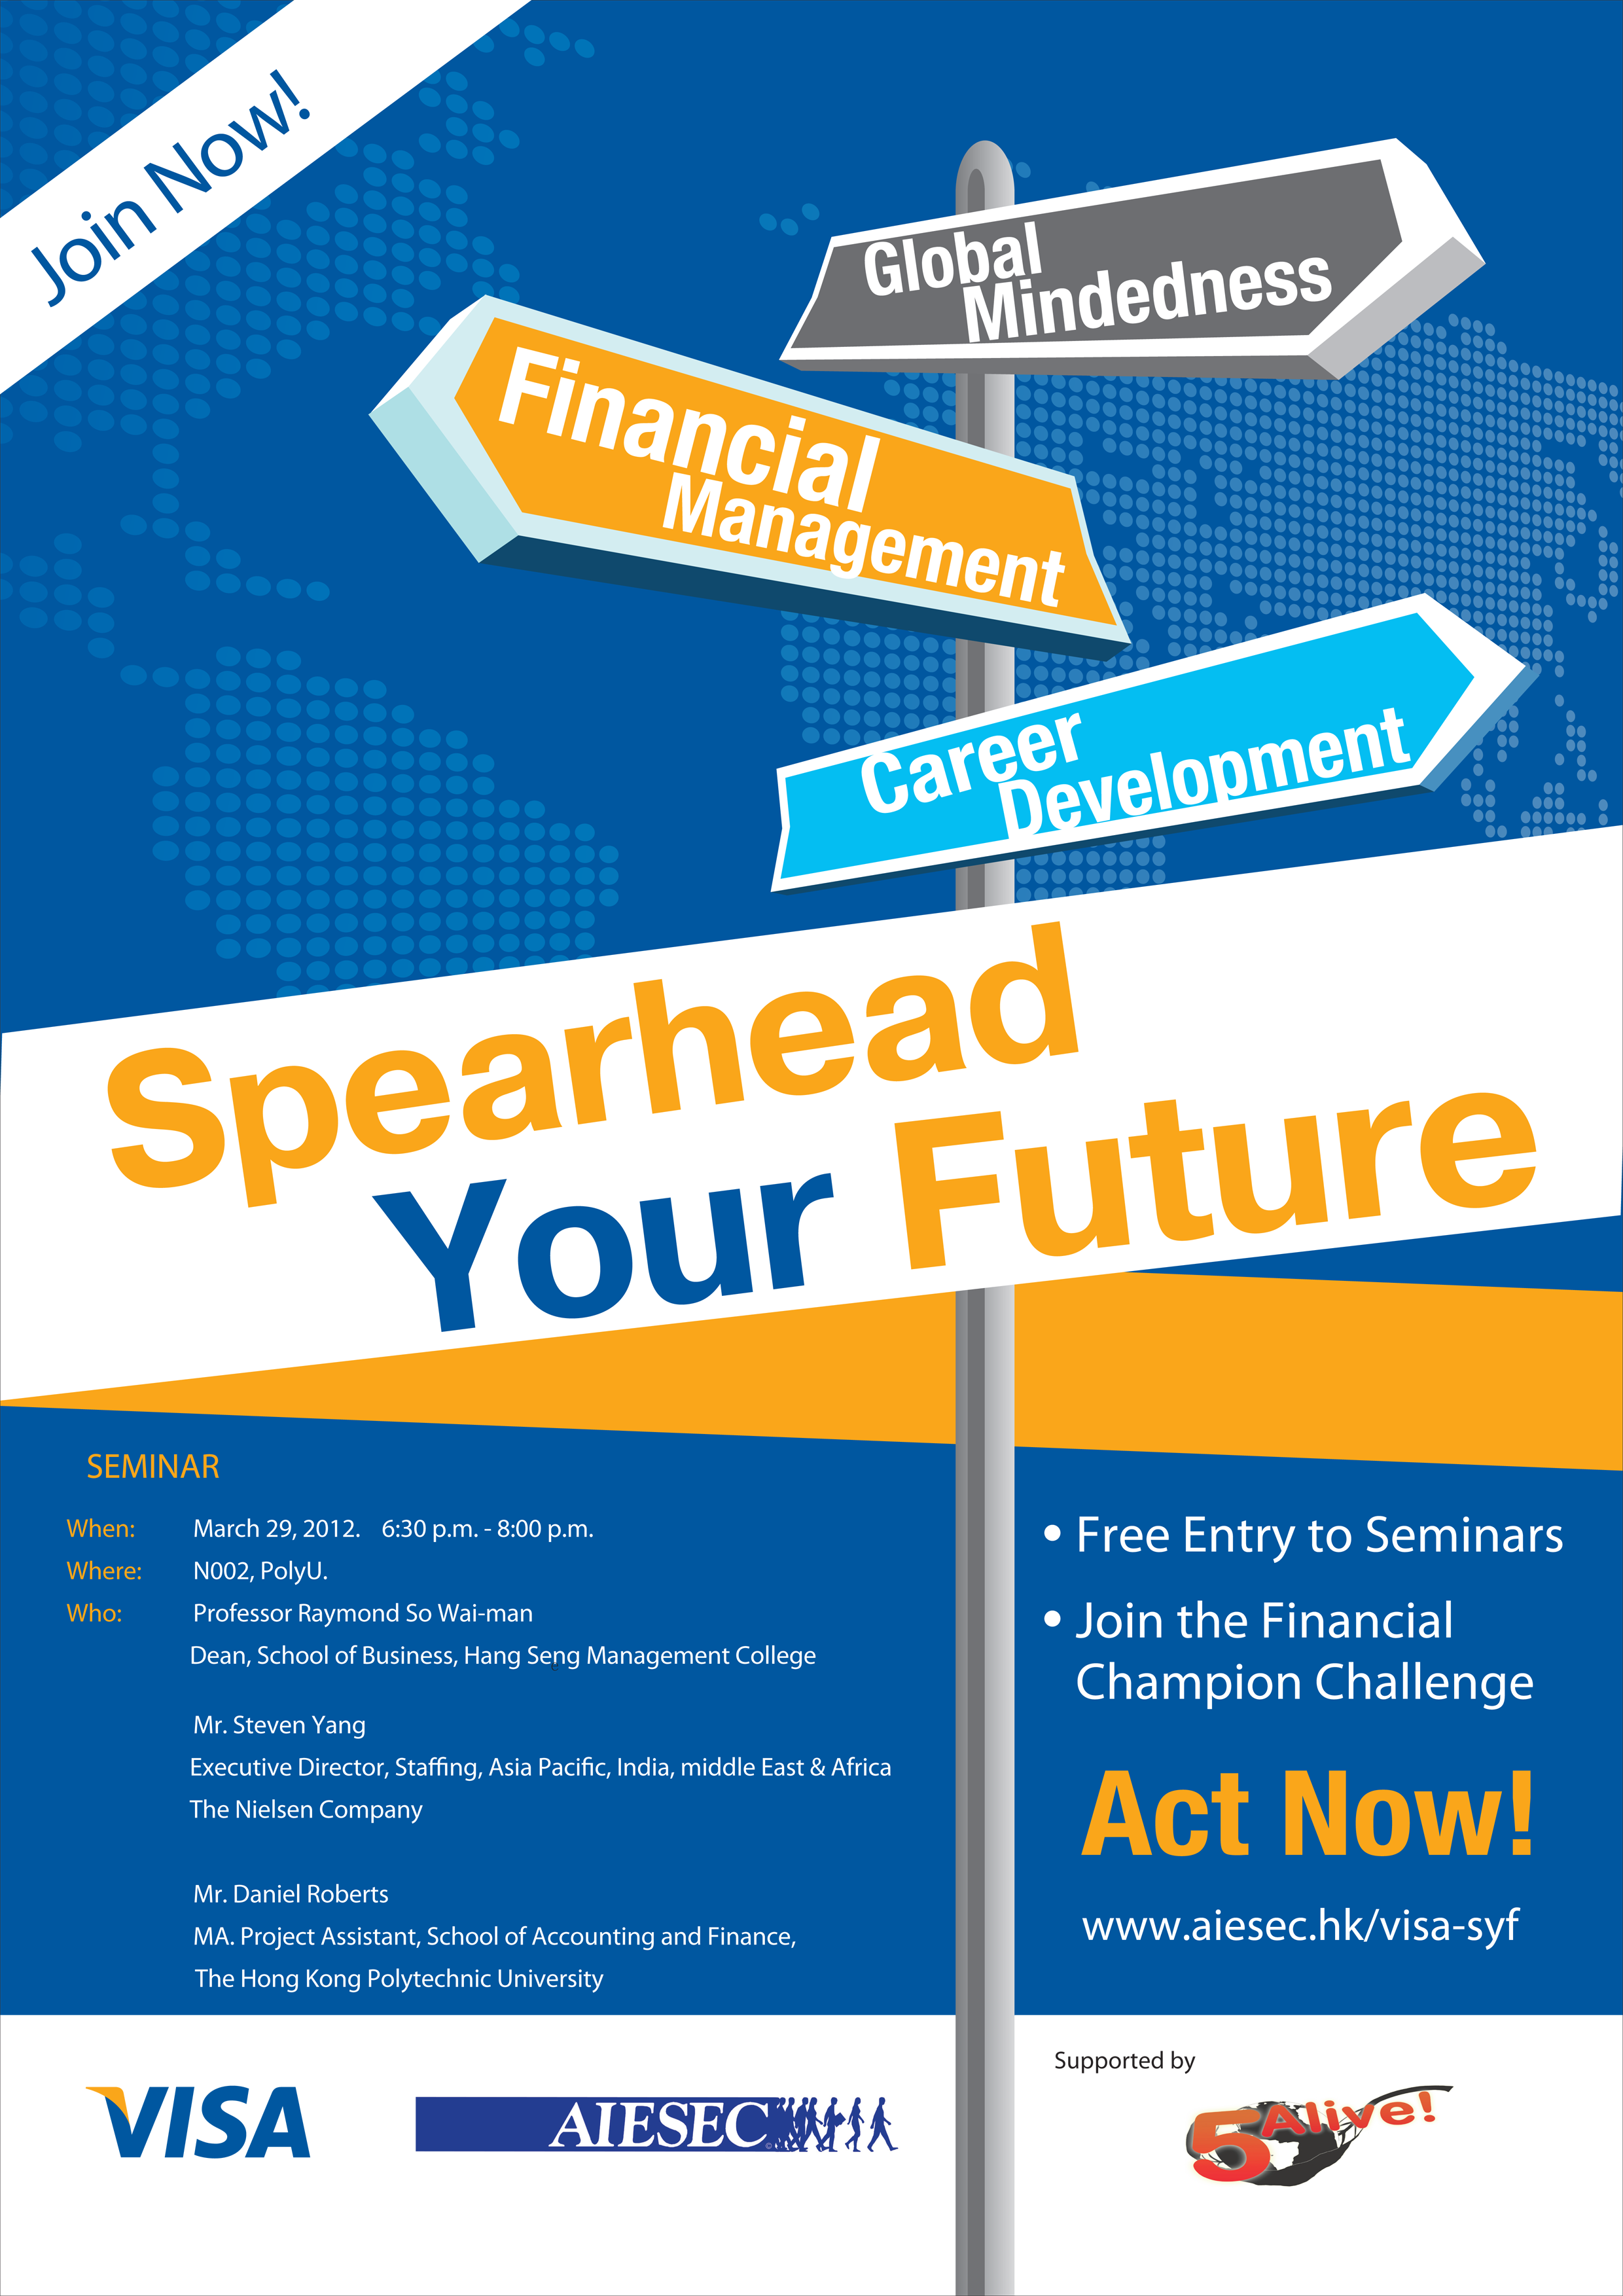 Finance Poster : finance, poster, Flyer, Finance, Education, Events, Financial, Seminar,, Finance,, Investing, Infographic